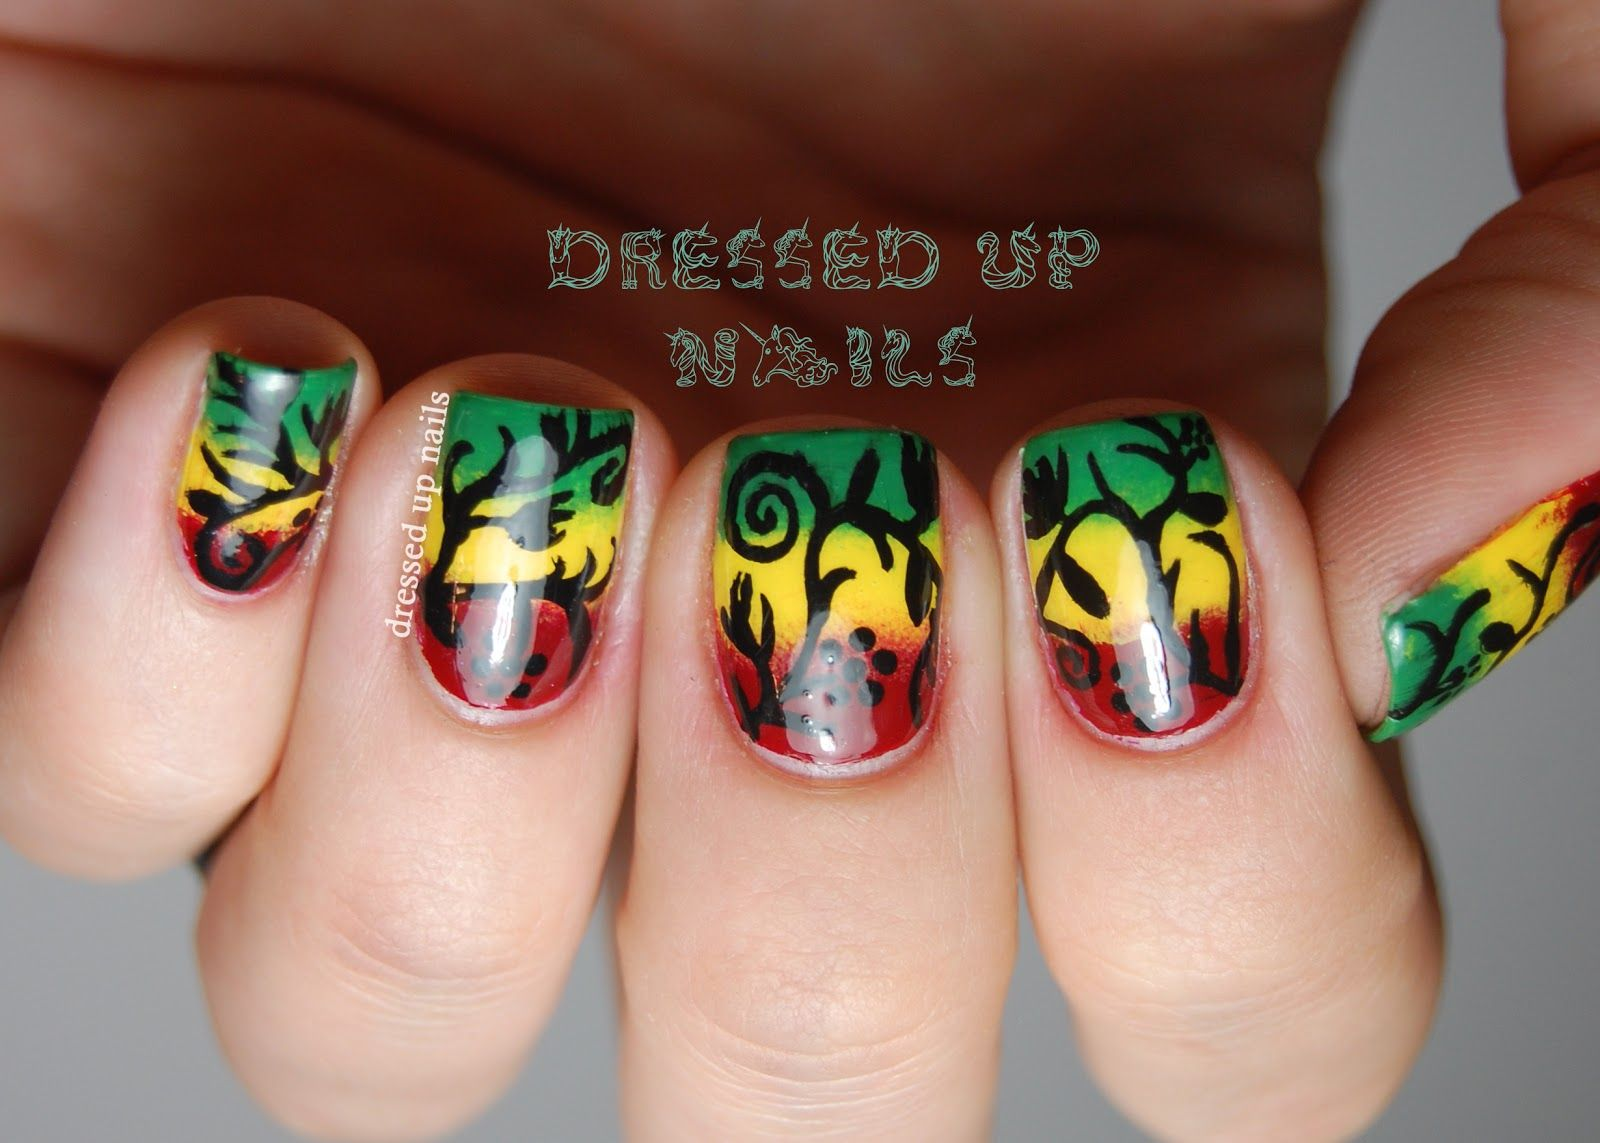 Dressed up nails freehand floral silhouette nail art over a dressed up nails freehand floral silhouette nail art over a rasta color gradient prinsesfo Choice Image